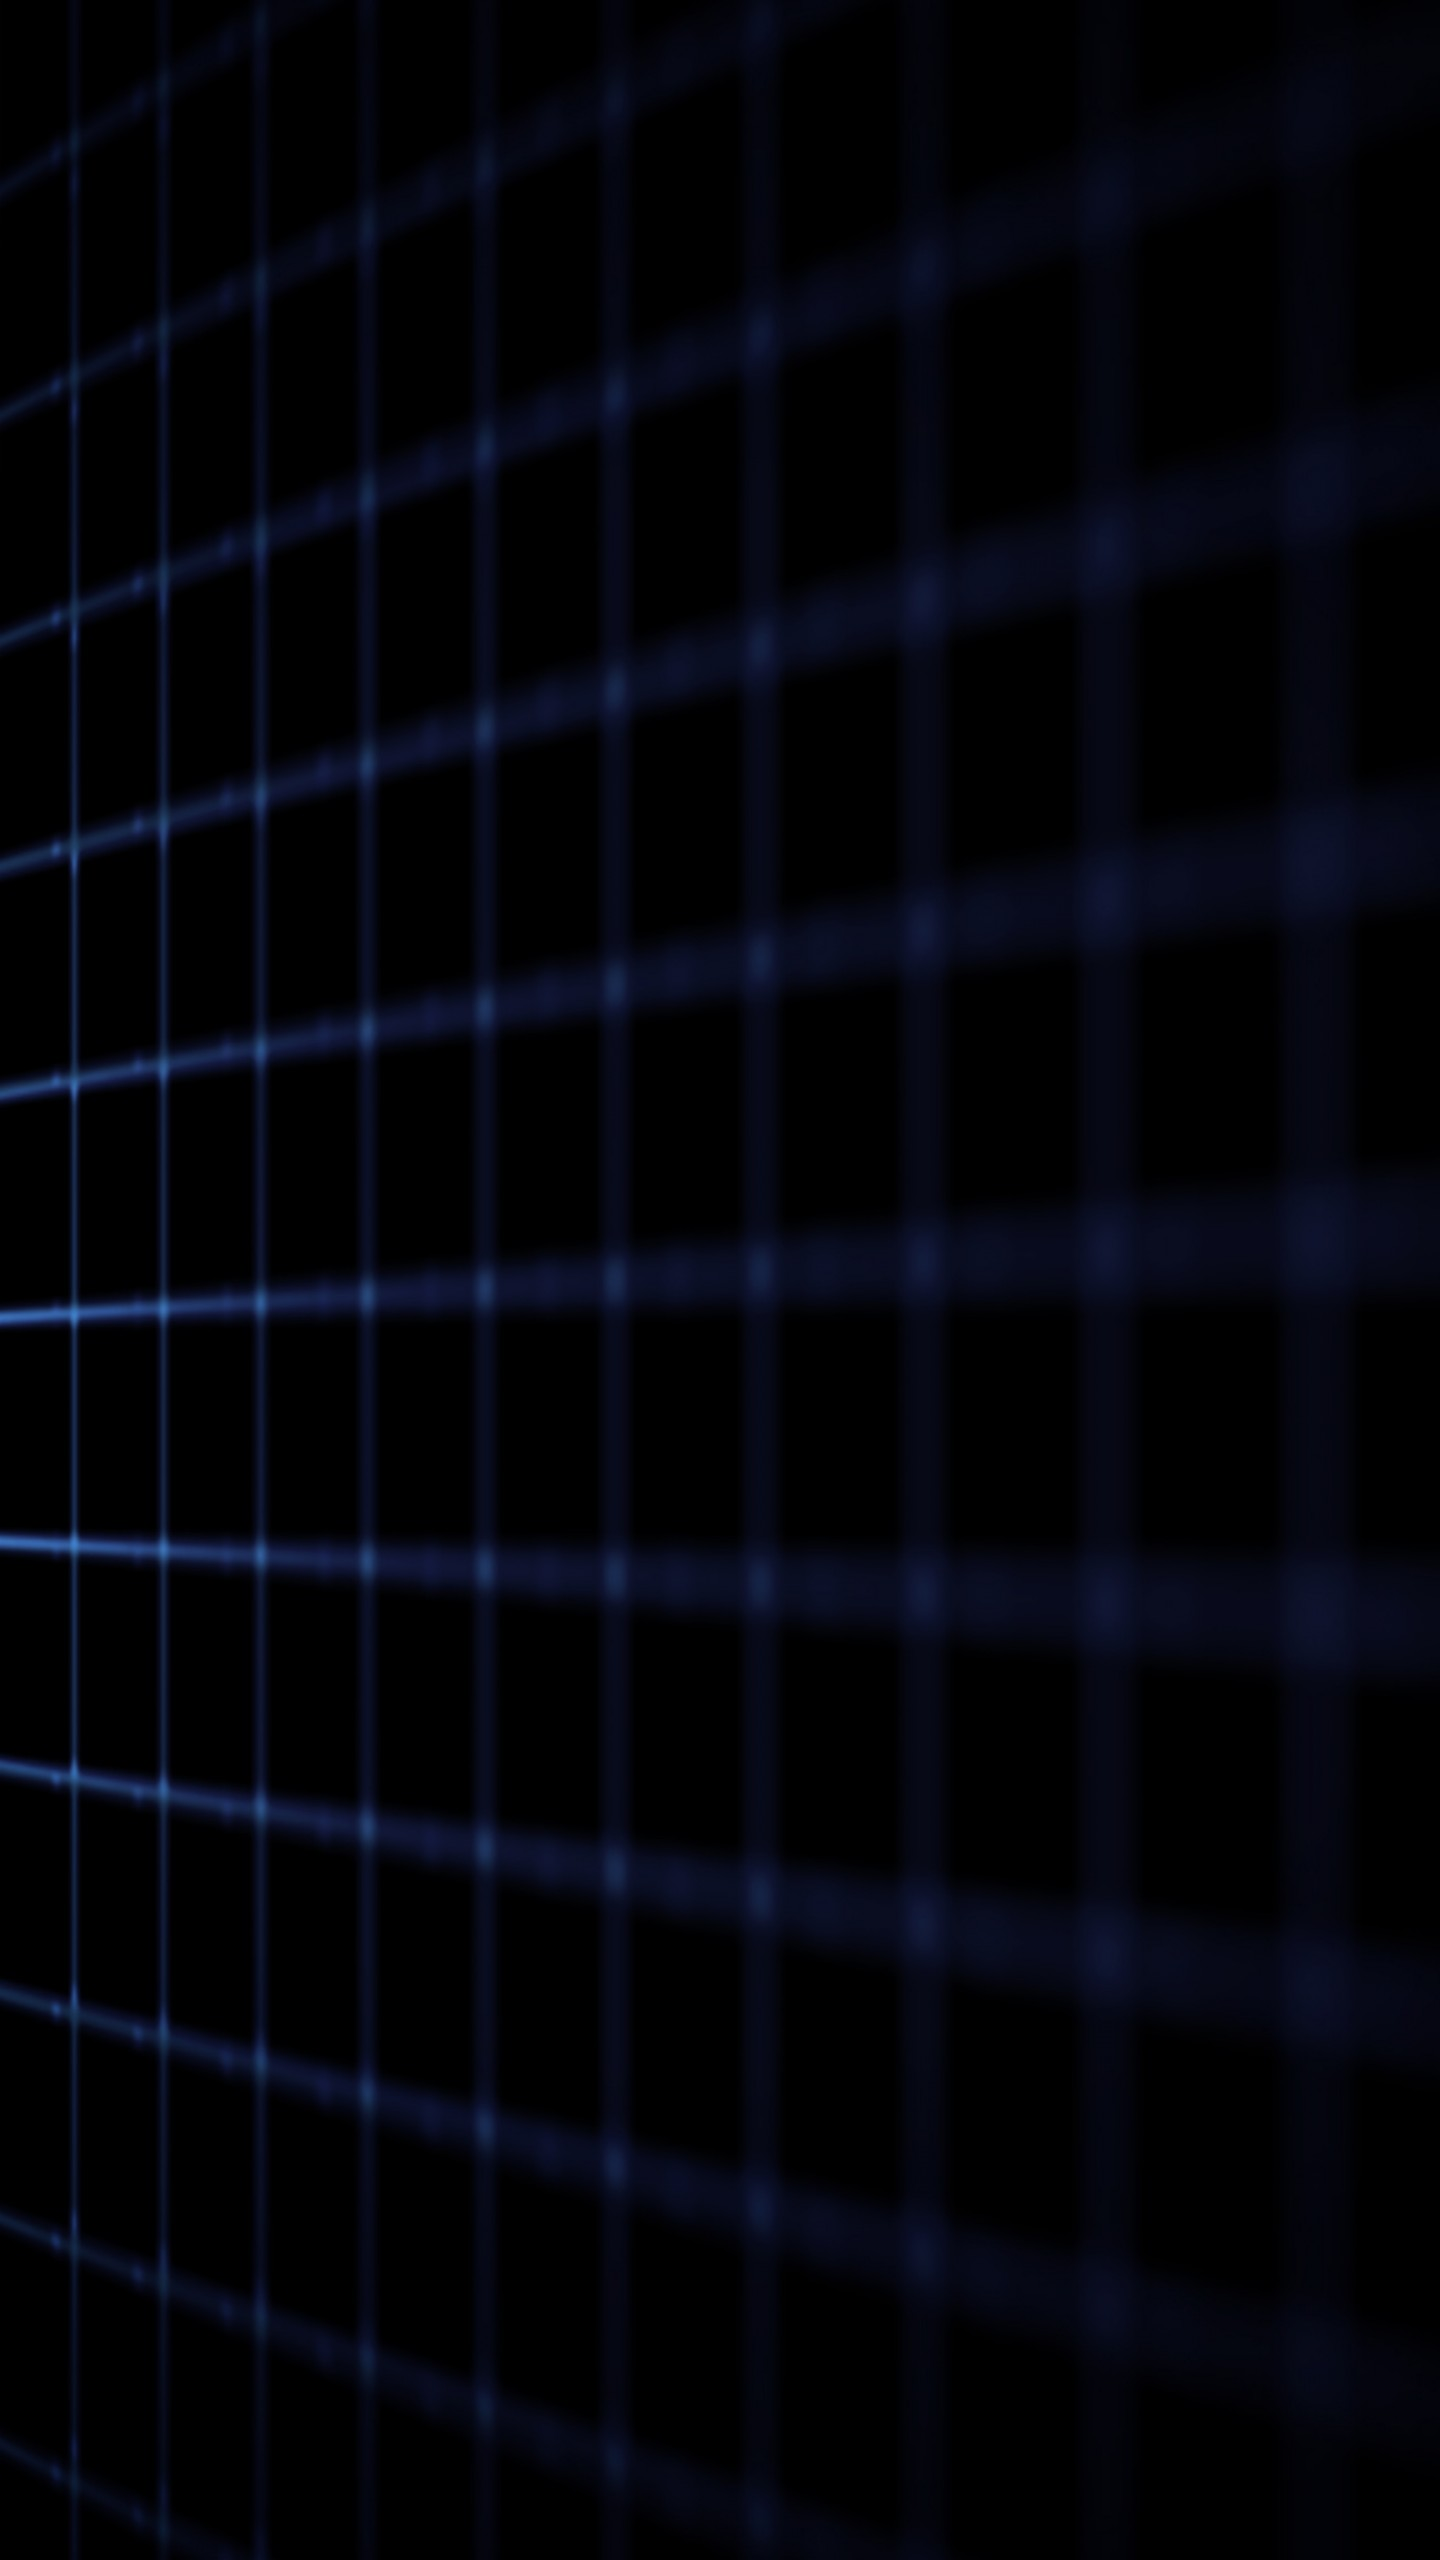 Wallpaper Lines Grid Black 4k Abstract 15168